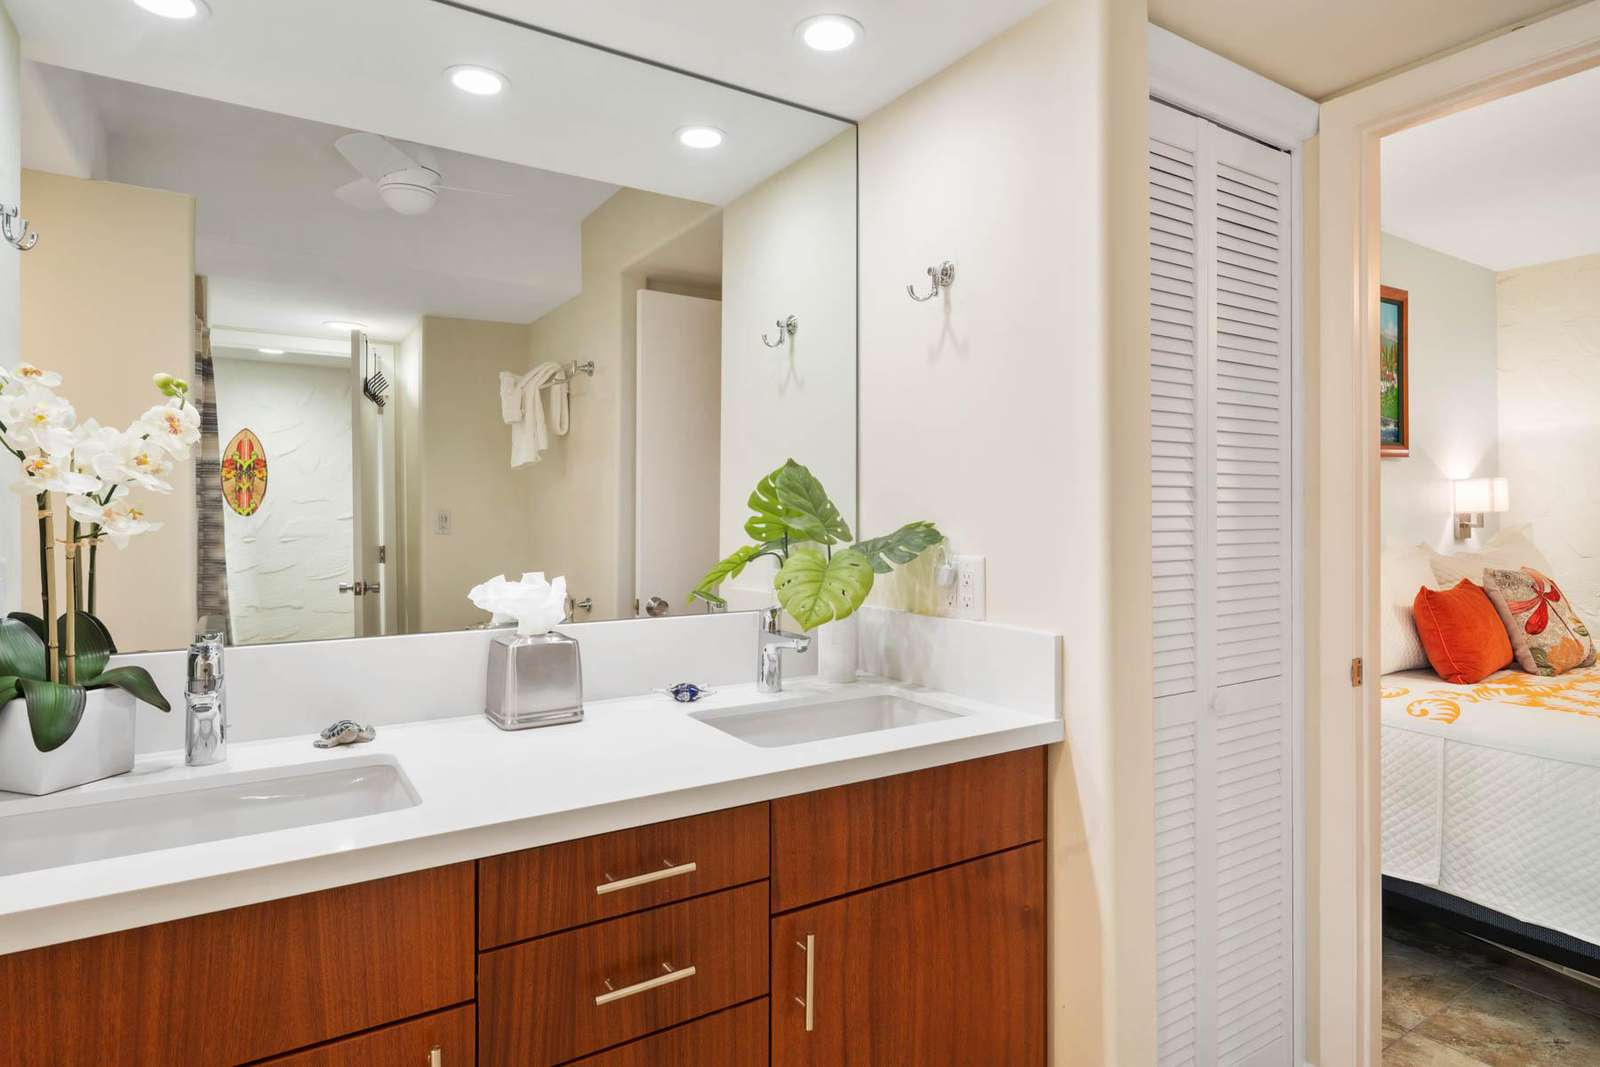 Pass-through bathroom with a good sized dual vanity.